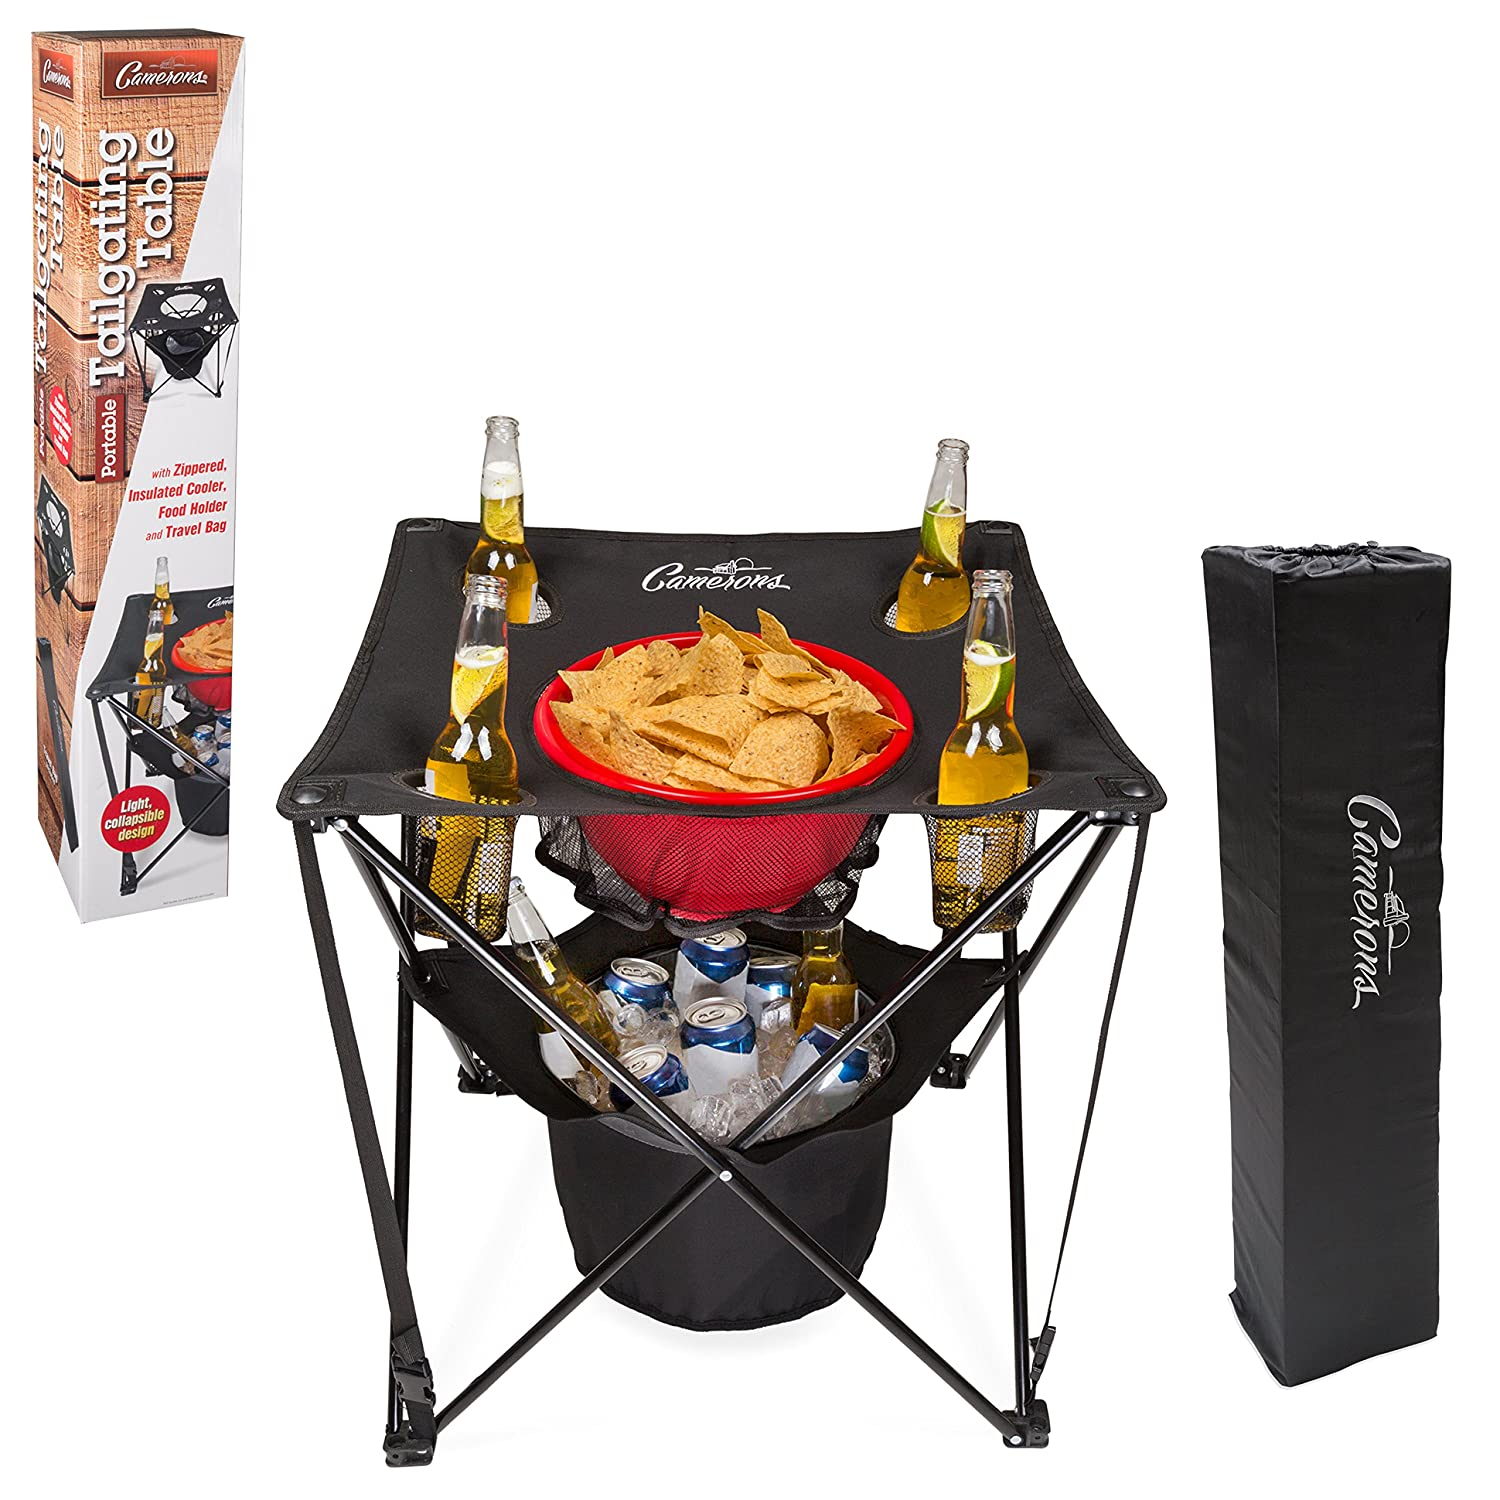 Amazon.com : Tailgating Table  Collapsible Folding Camping Table With  Insulated Cooler, Food Basket And Travel Bag For Barbecue, Picnic U0026 Tailgate  : Sports ...